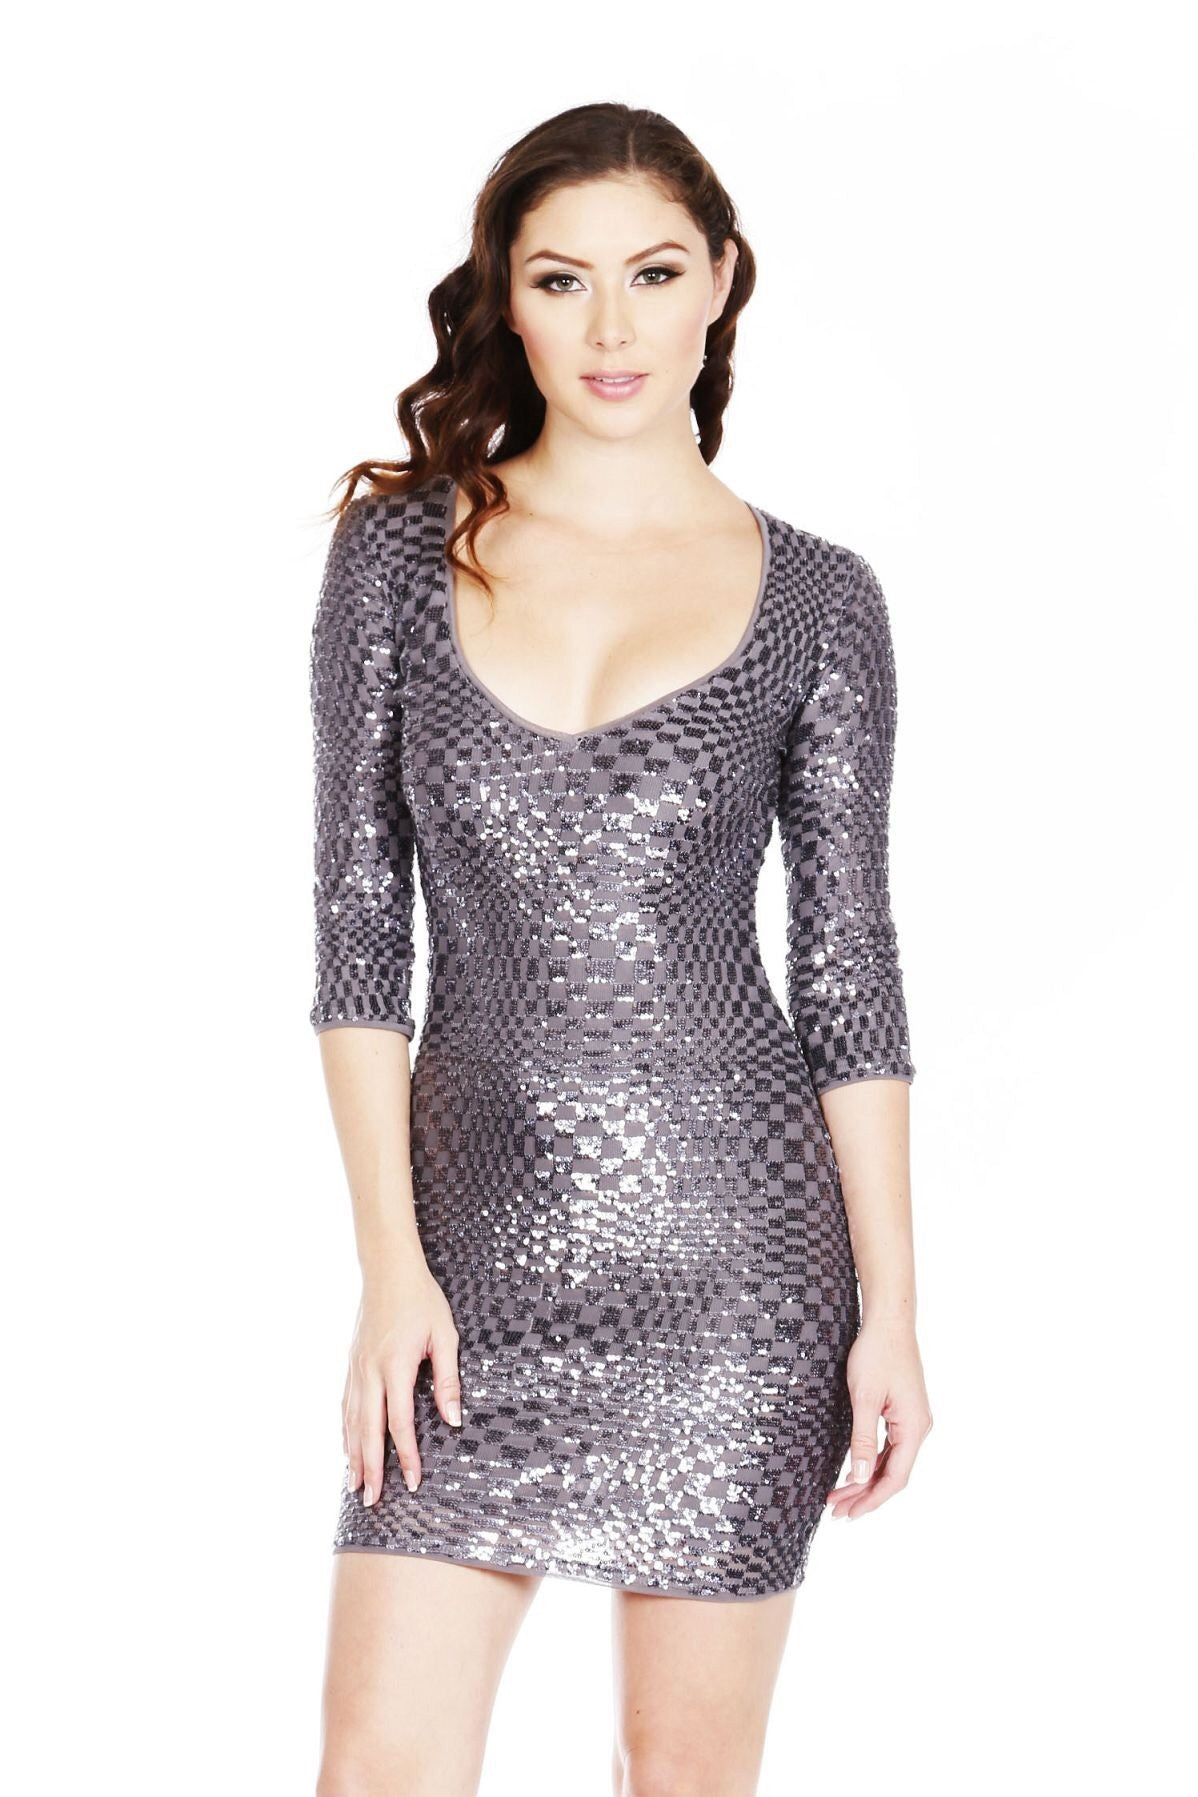 Naughty Grl Sequin Bodycon Dress With Zipper - Charcole Grey - NaughtyGrl